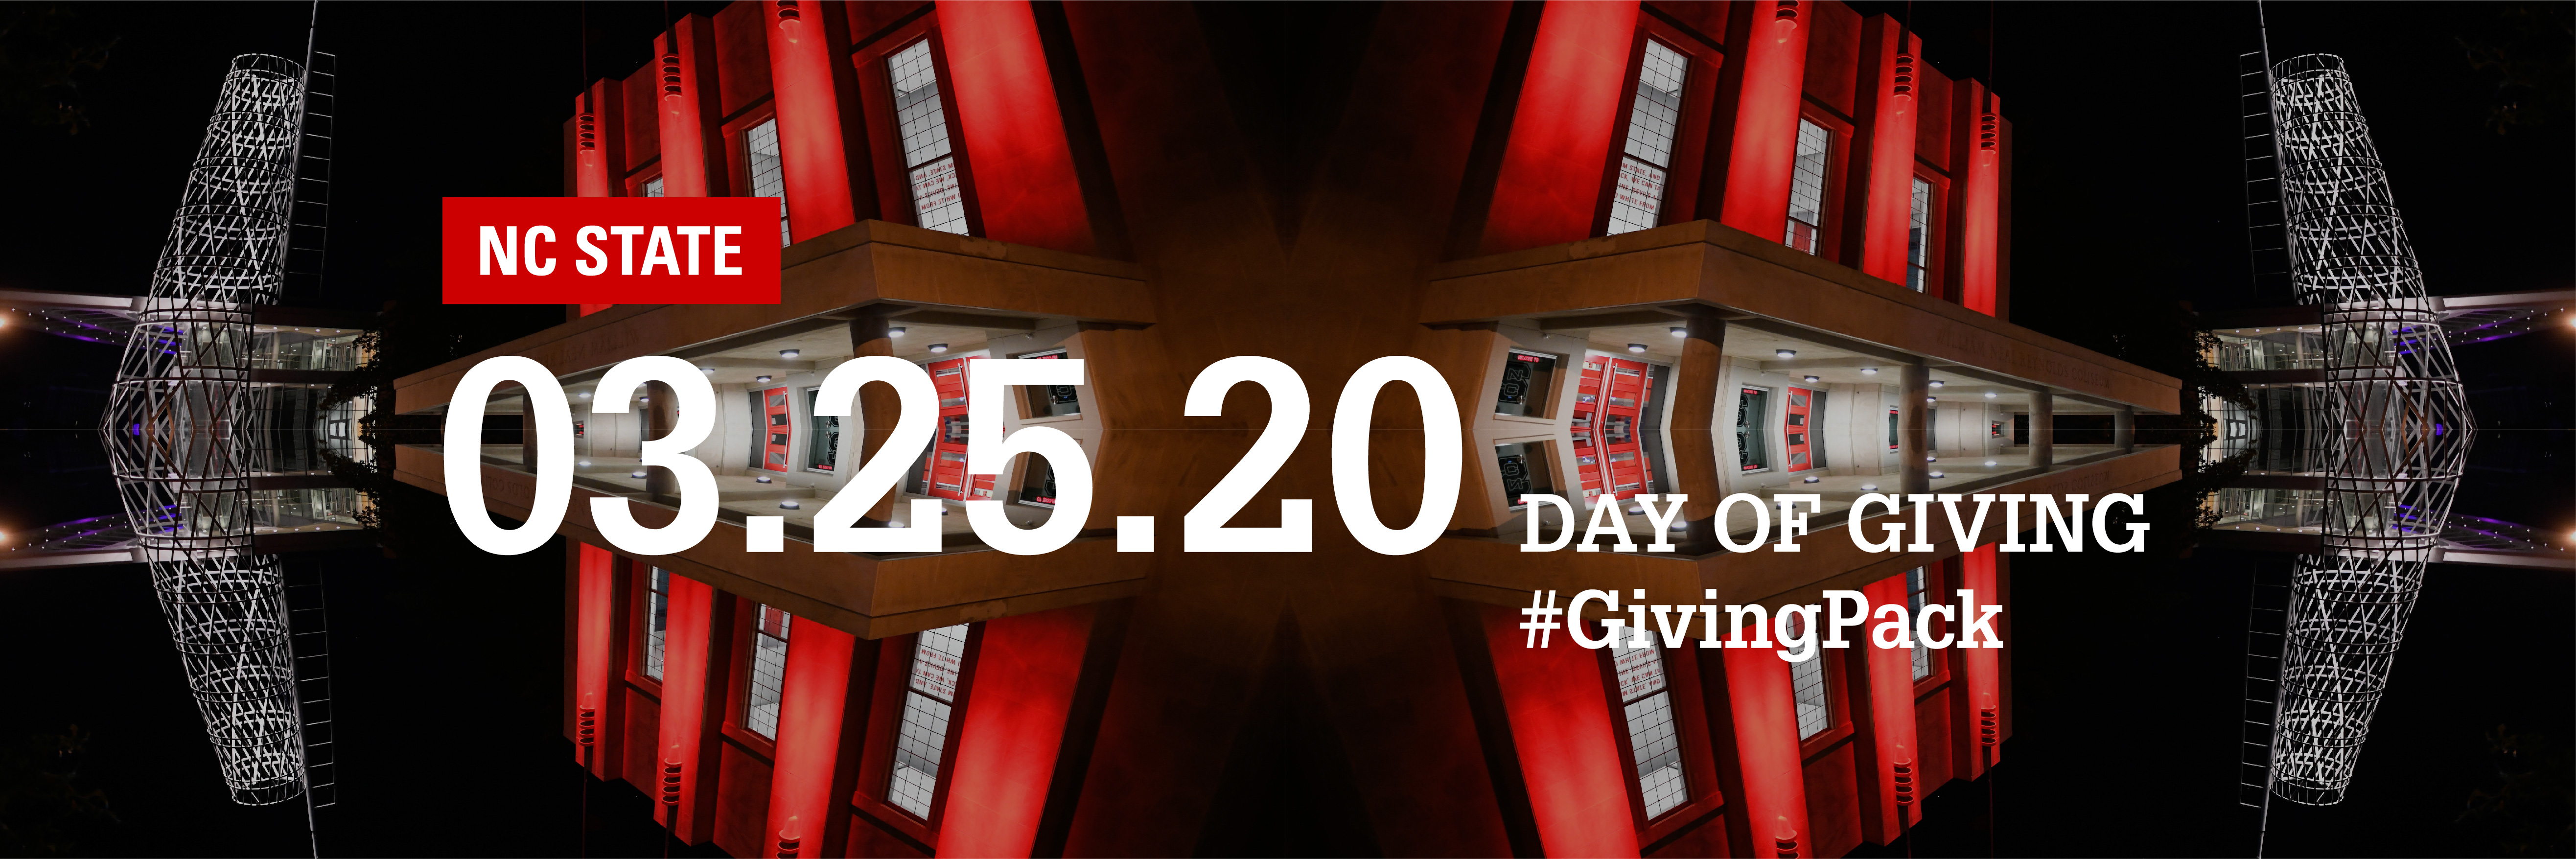 Twitter cover photo with image of Reynolds Coliseum and text reading NC State 03.25.20 Day of Giving Hashtag Giving Pack